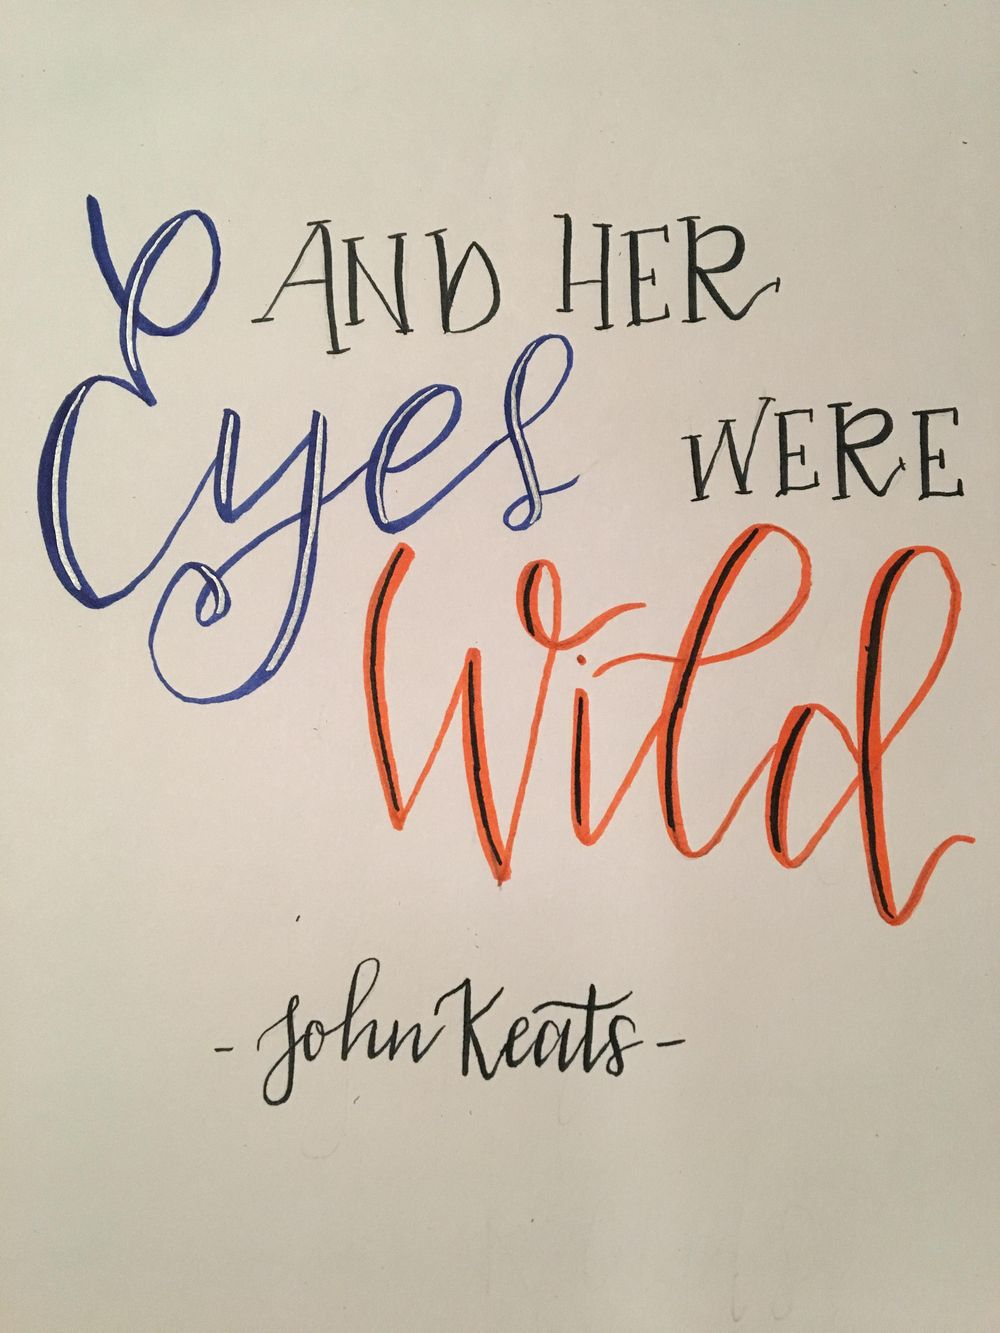 Keats Quote - image 1 - student project